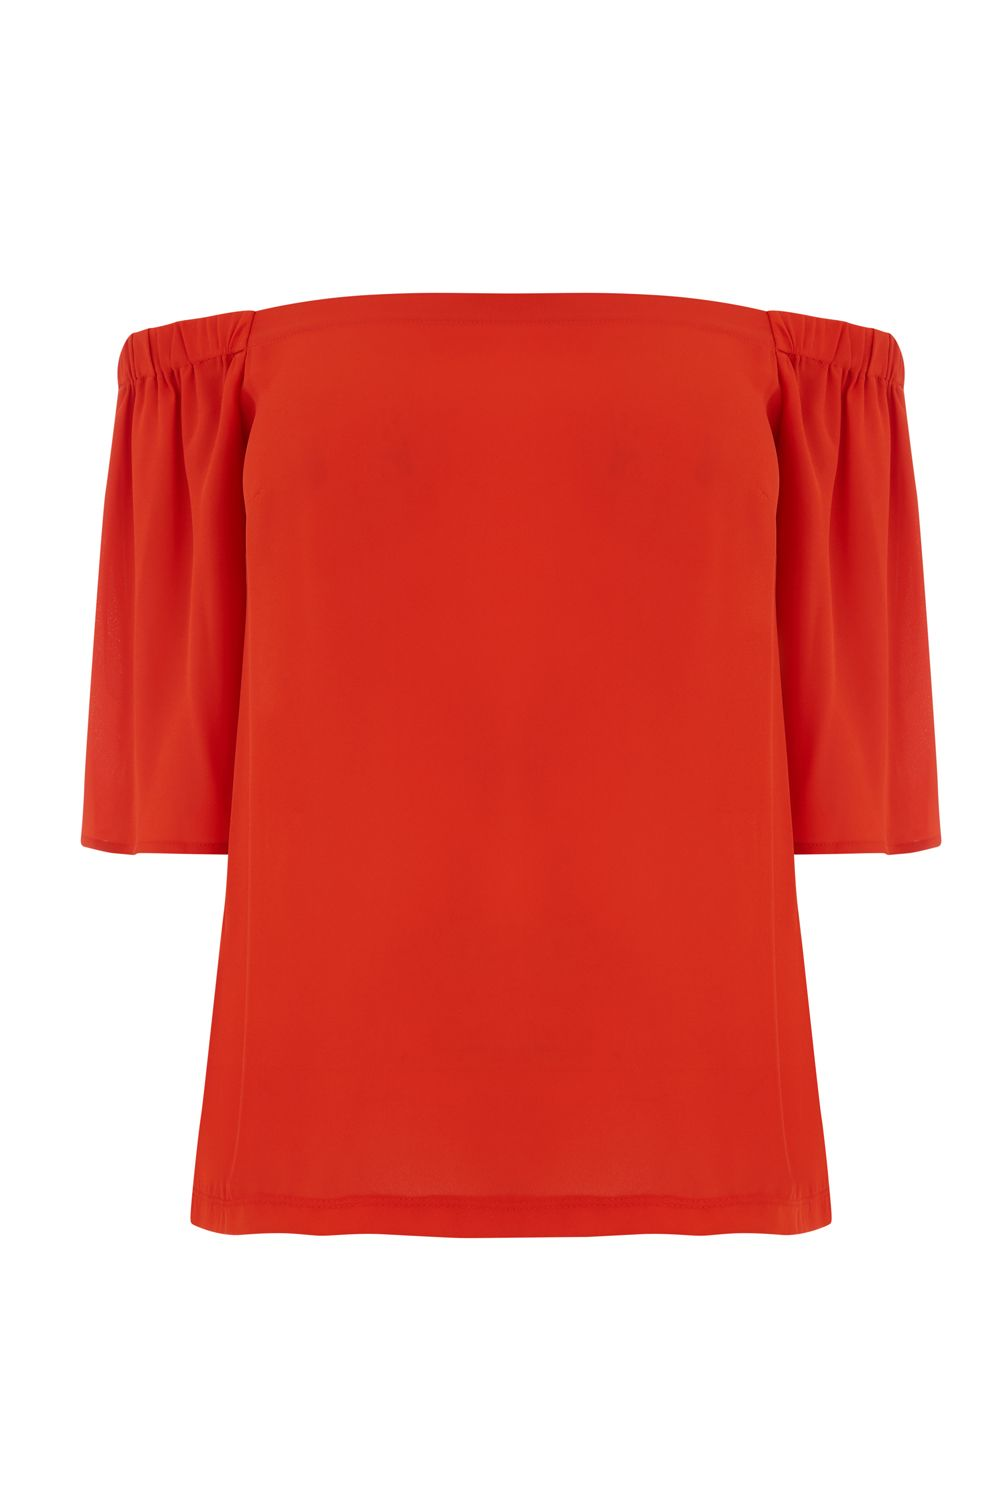 Warehouse Woven Front Bardot Top, Red